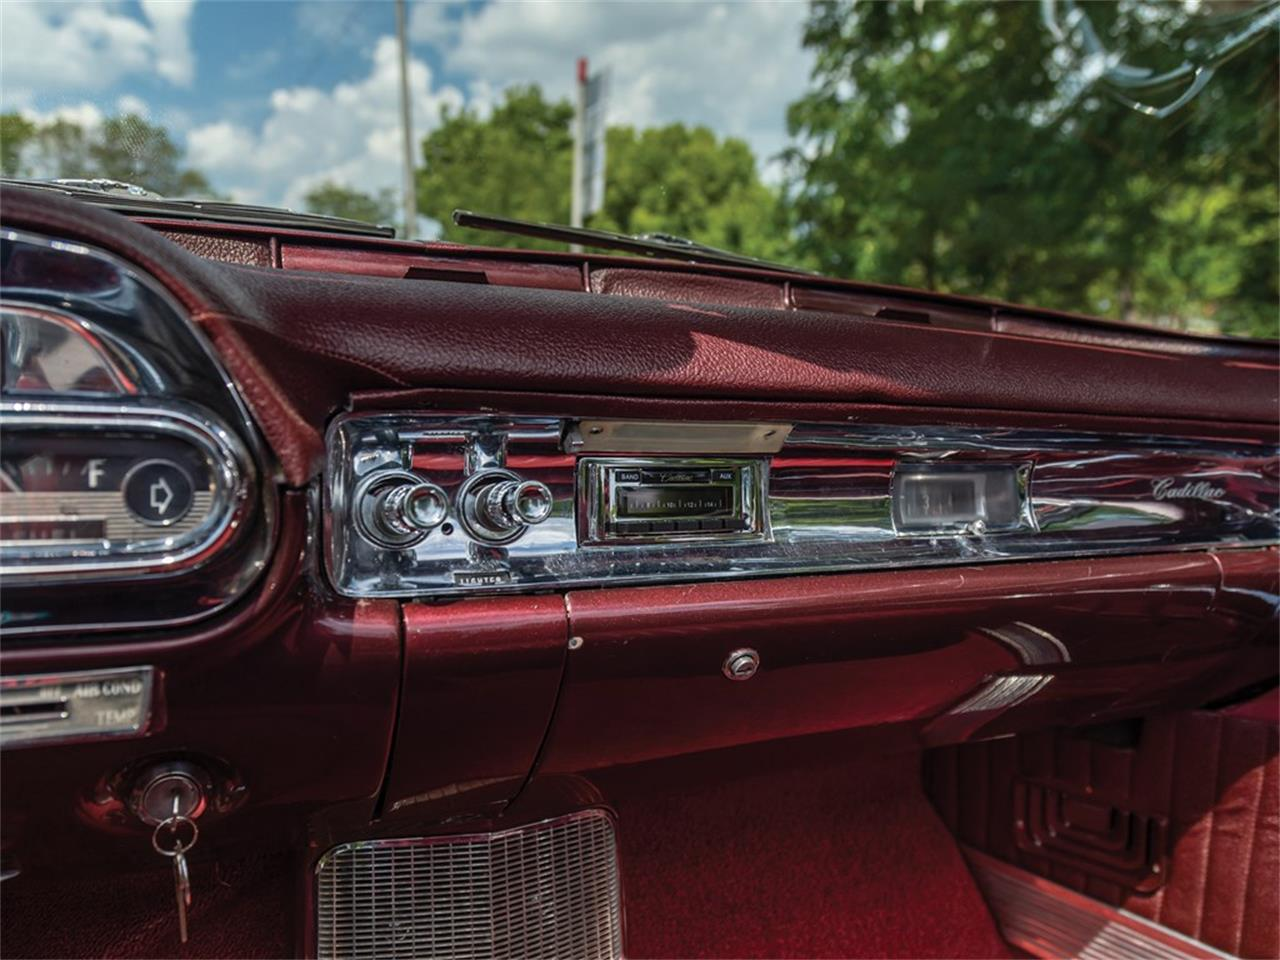 1957 Cadillac Eldorado Biarritz for sale in Auburn, IN – photo 10